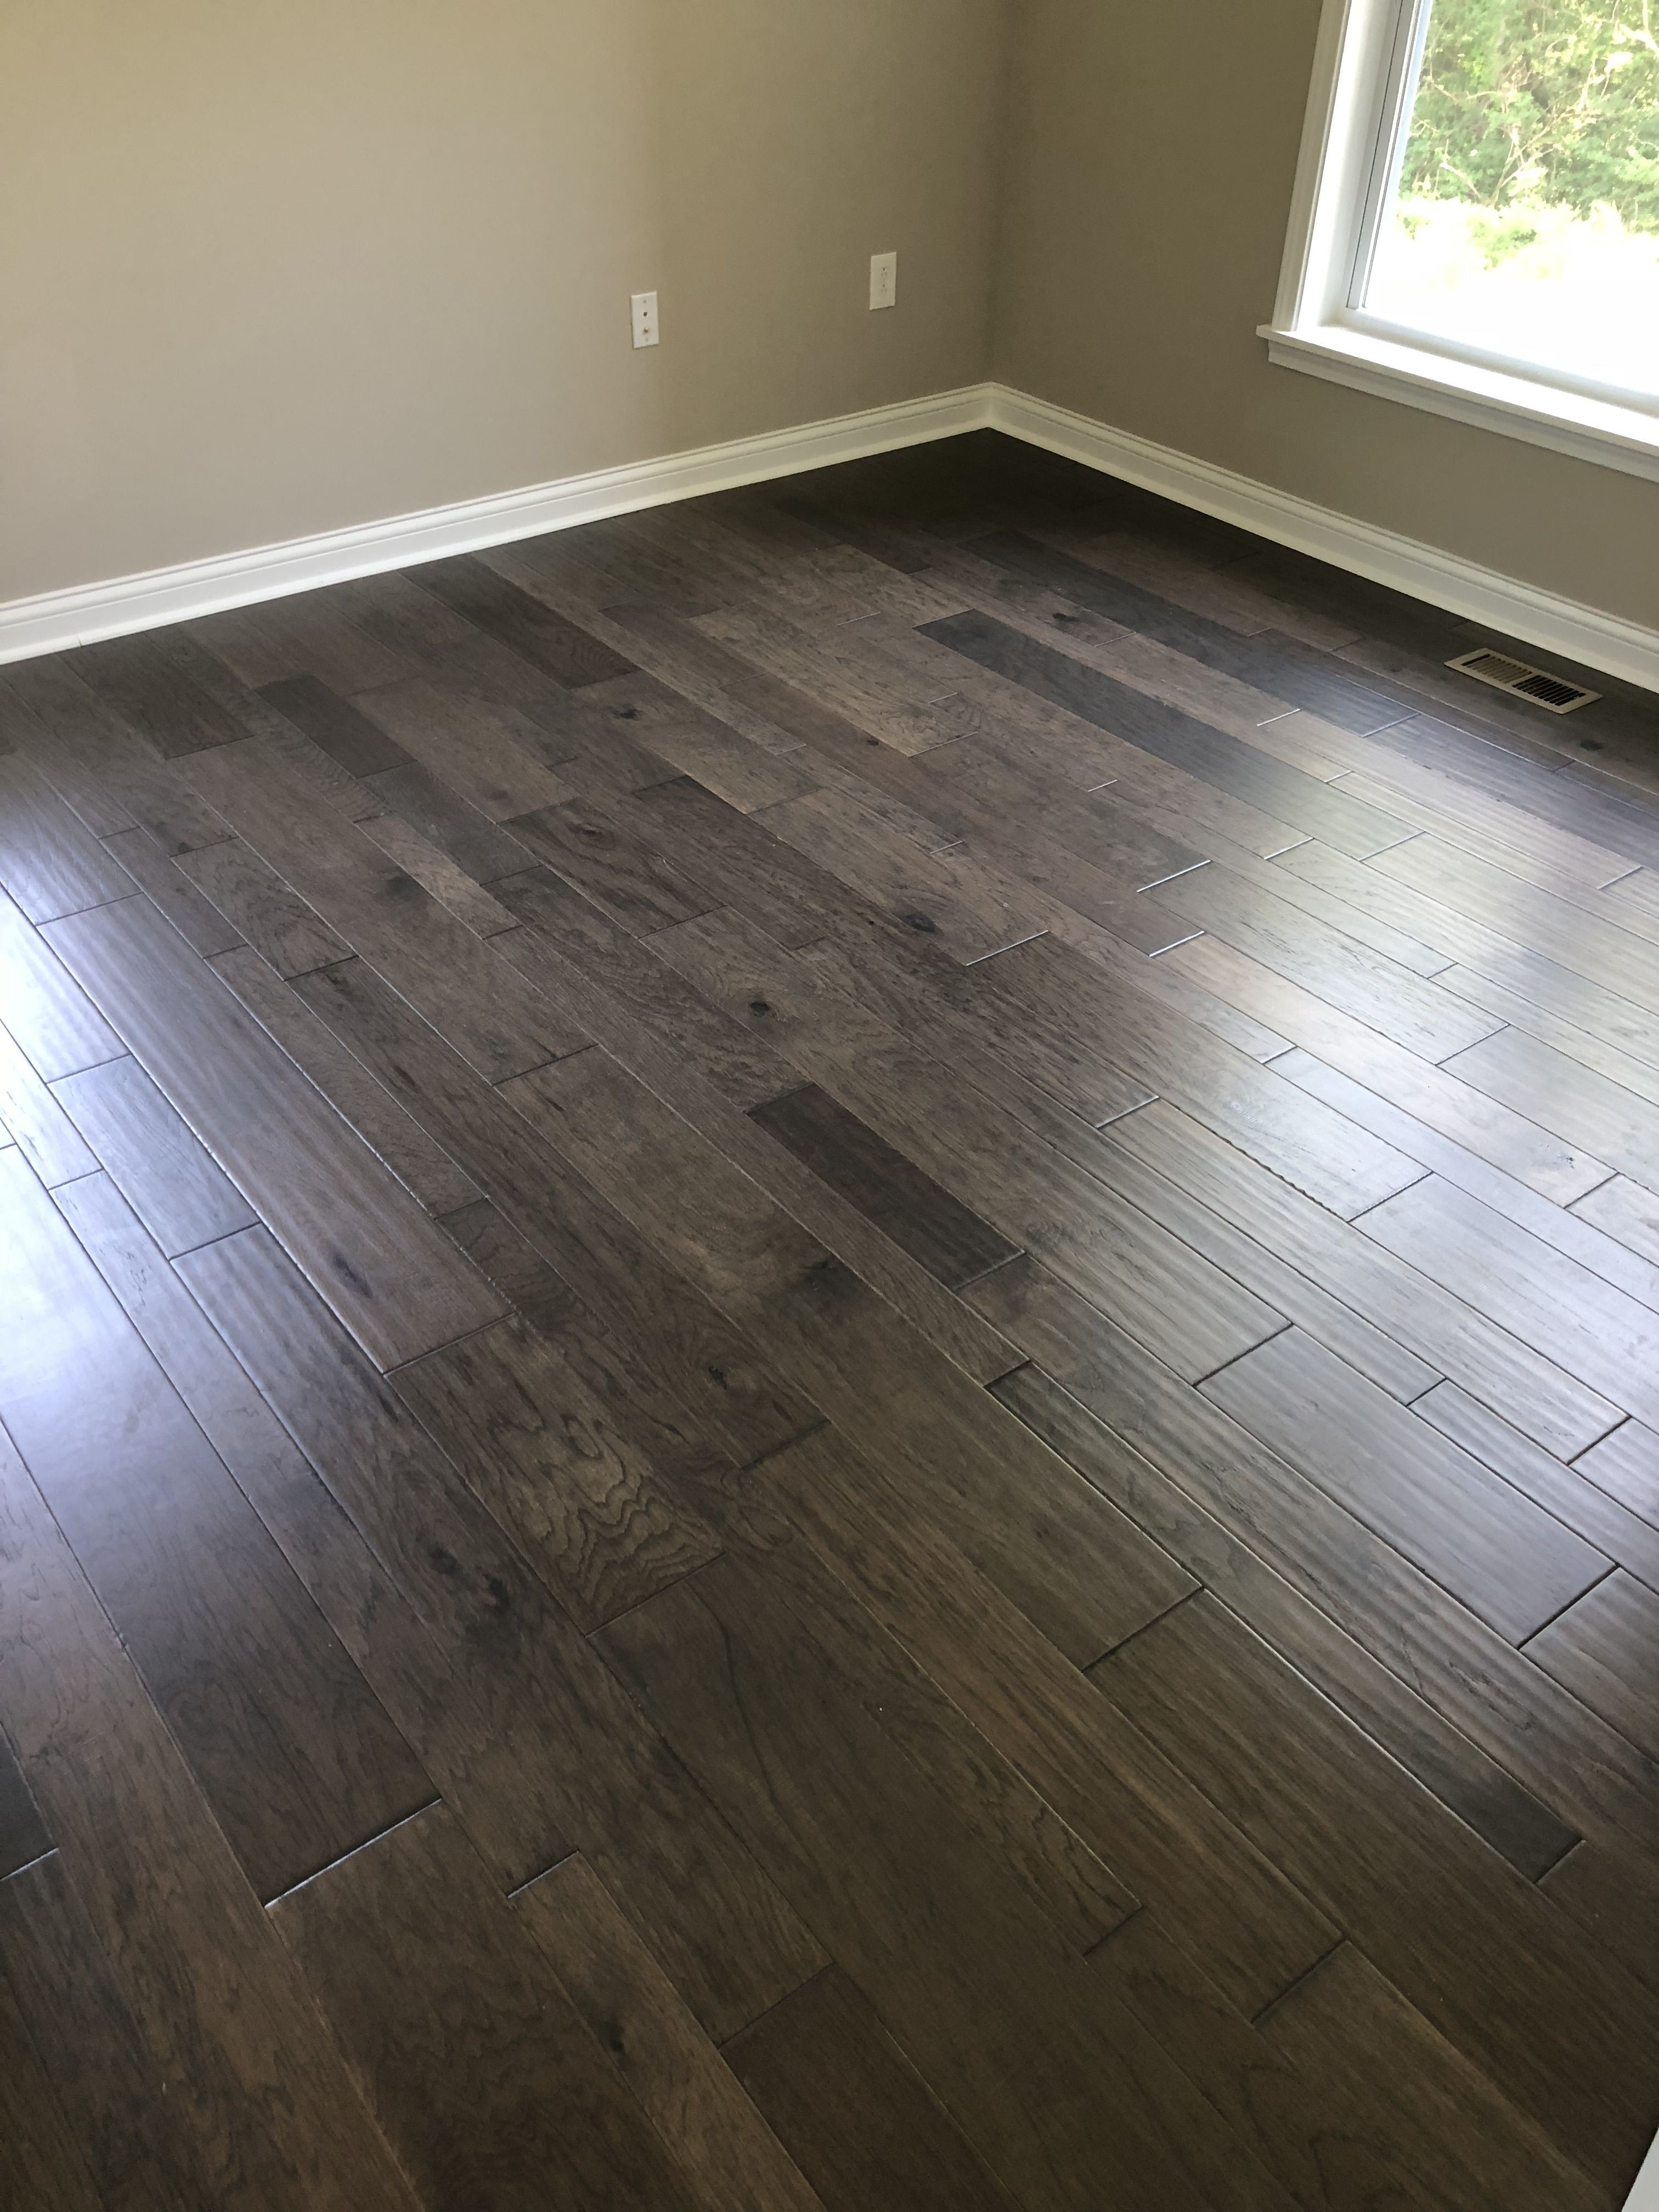 hickory hardwood flooring of engineered hickory wood floors inspirational wood floor stain in engineered hickory wood floors fresh glenford hickory anchor hickory engineered hardwood floors